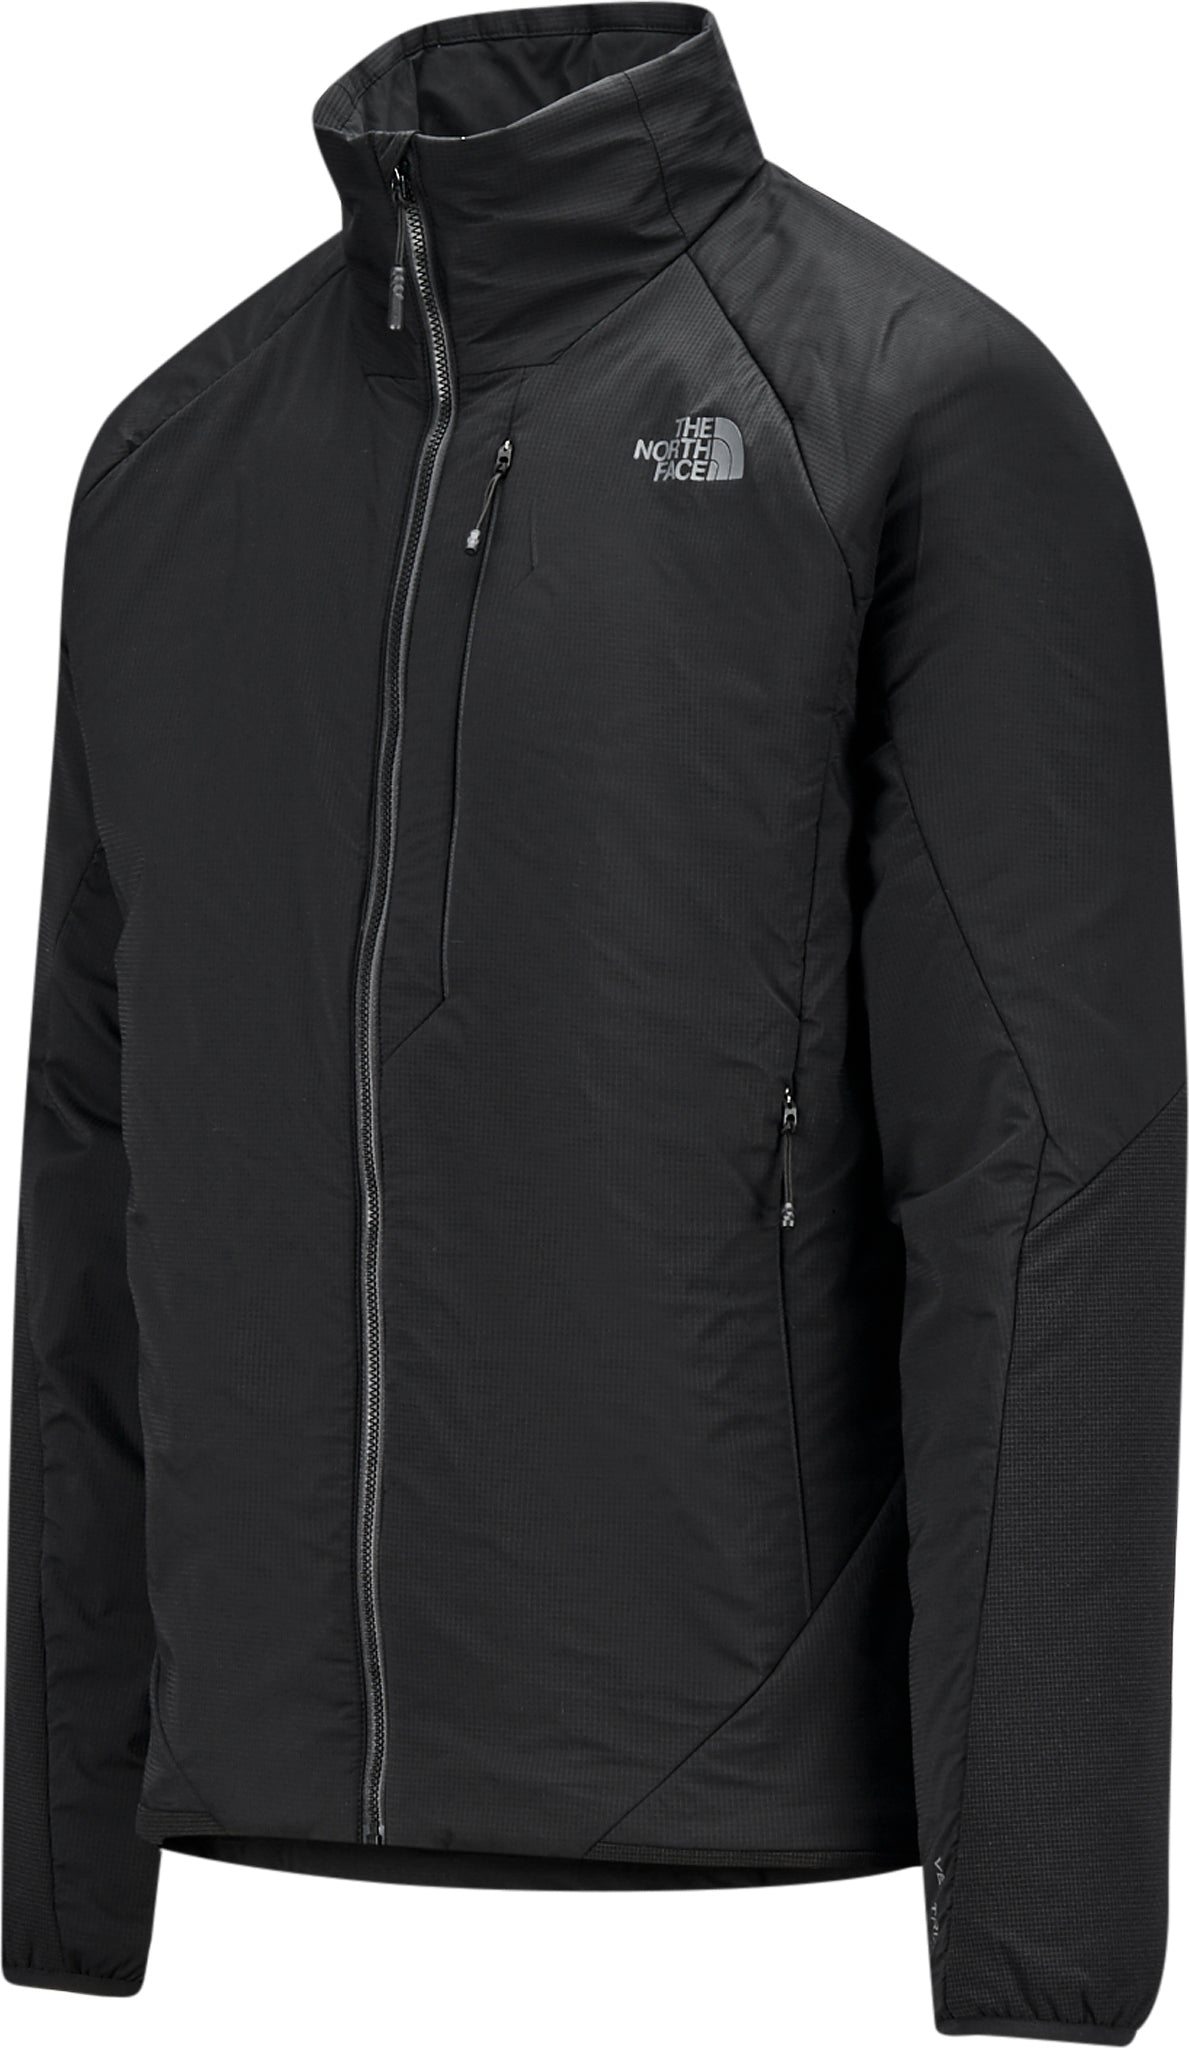 ce9da12a0 Ventrix Jacket - Men's